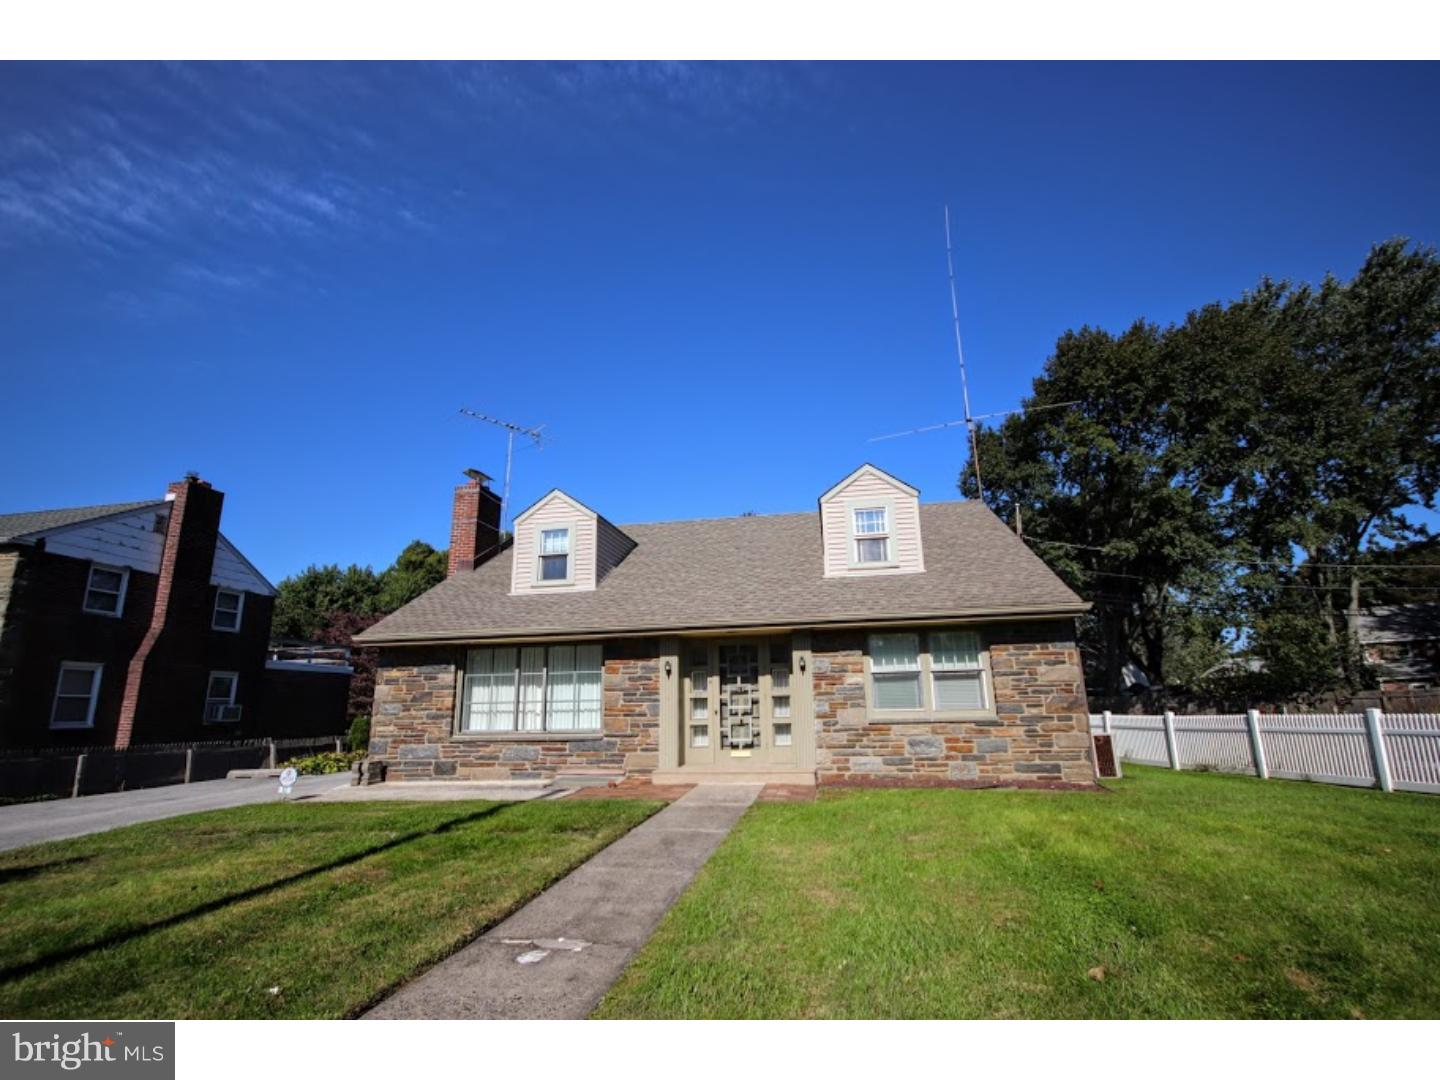 52 S State Road Springfield, PA 19064